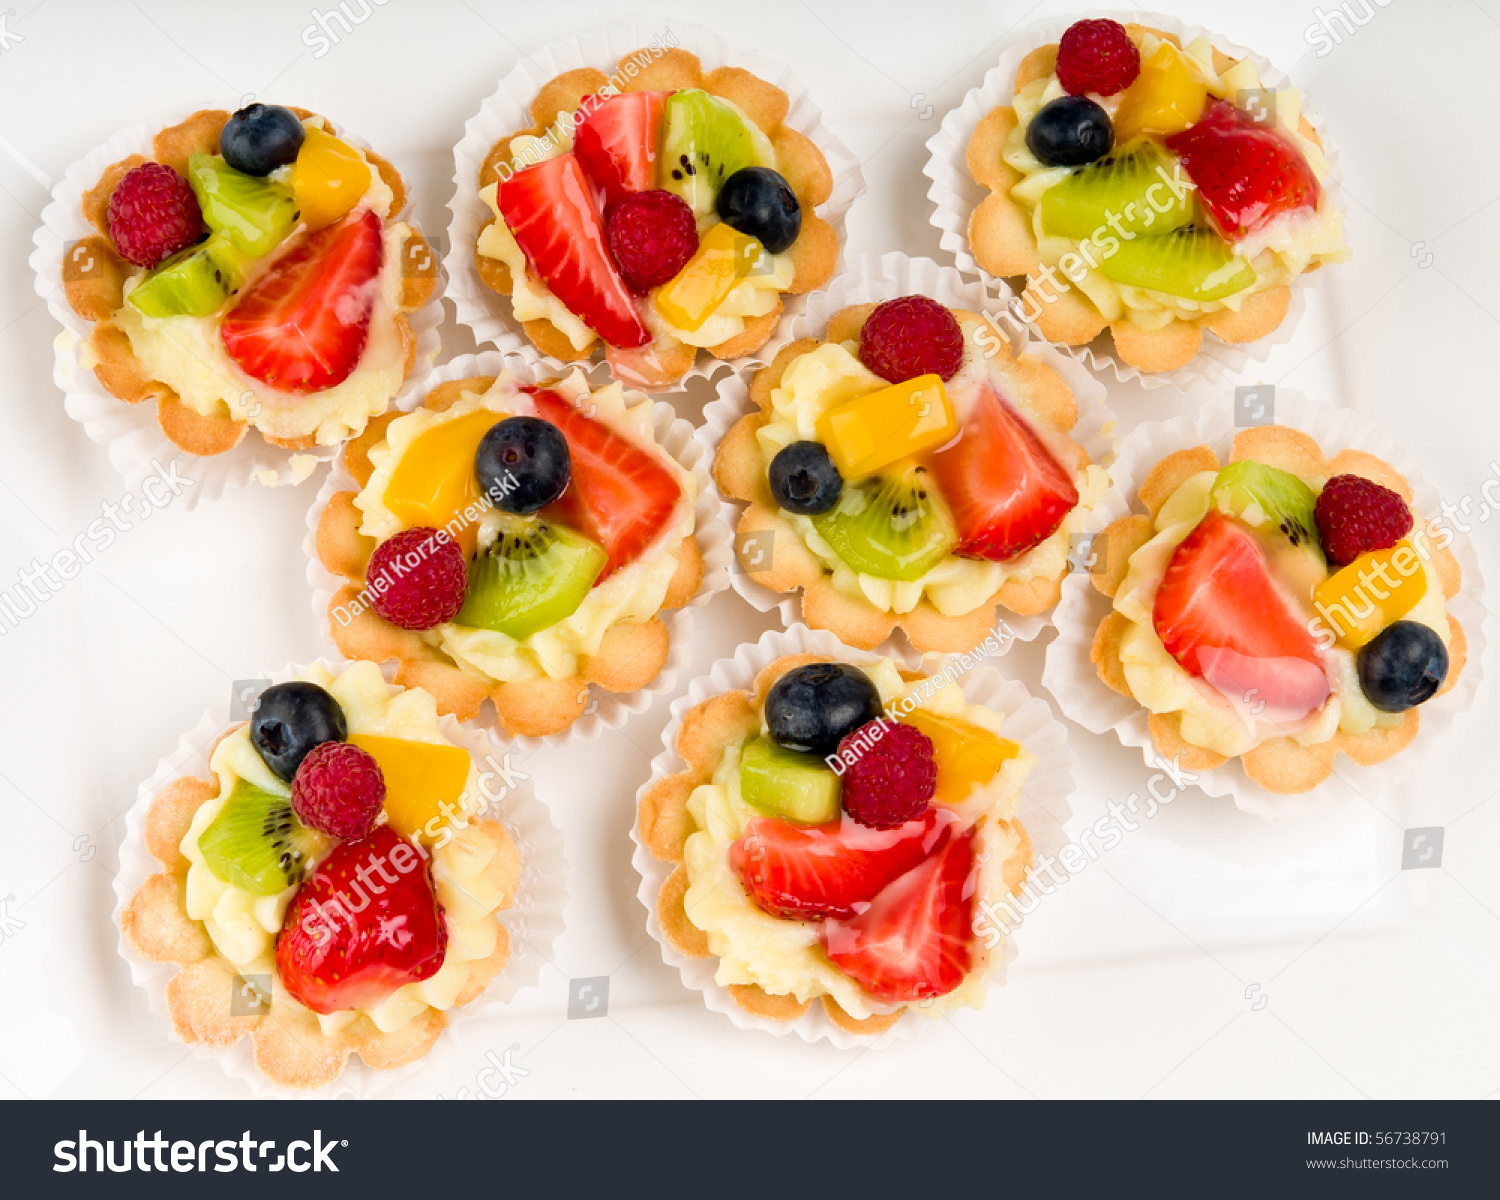 Dessert made fruit over voulavent pastry stock photo for Canape meaning in english